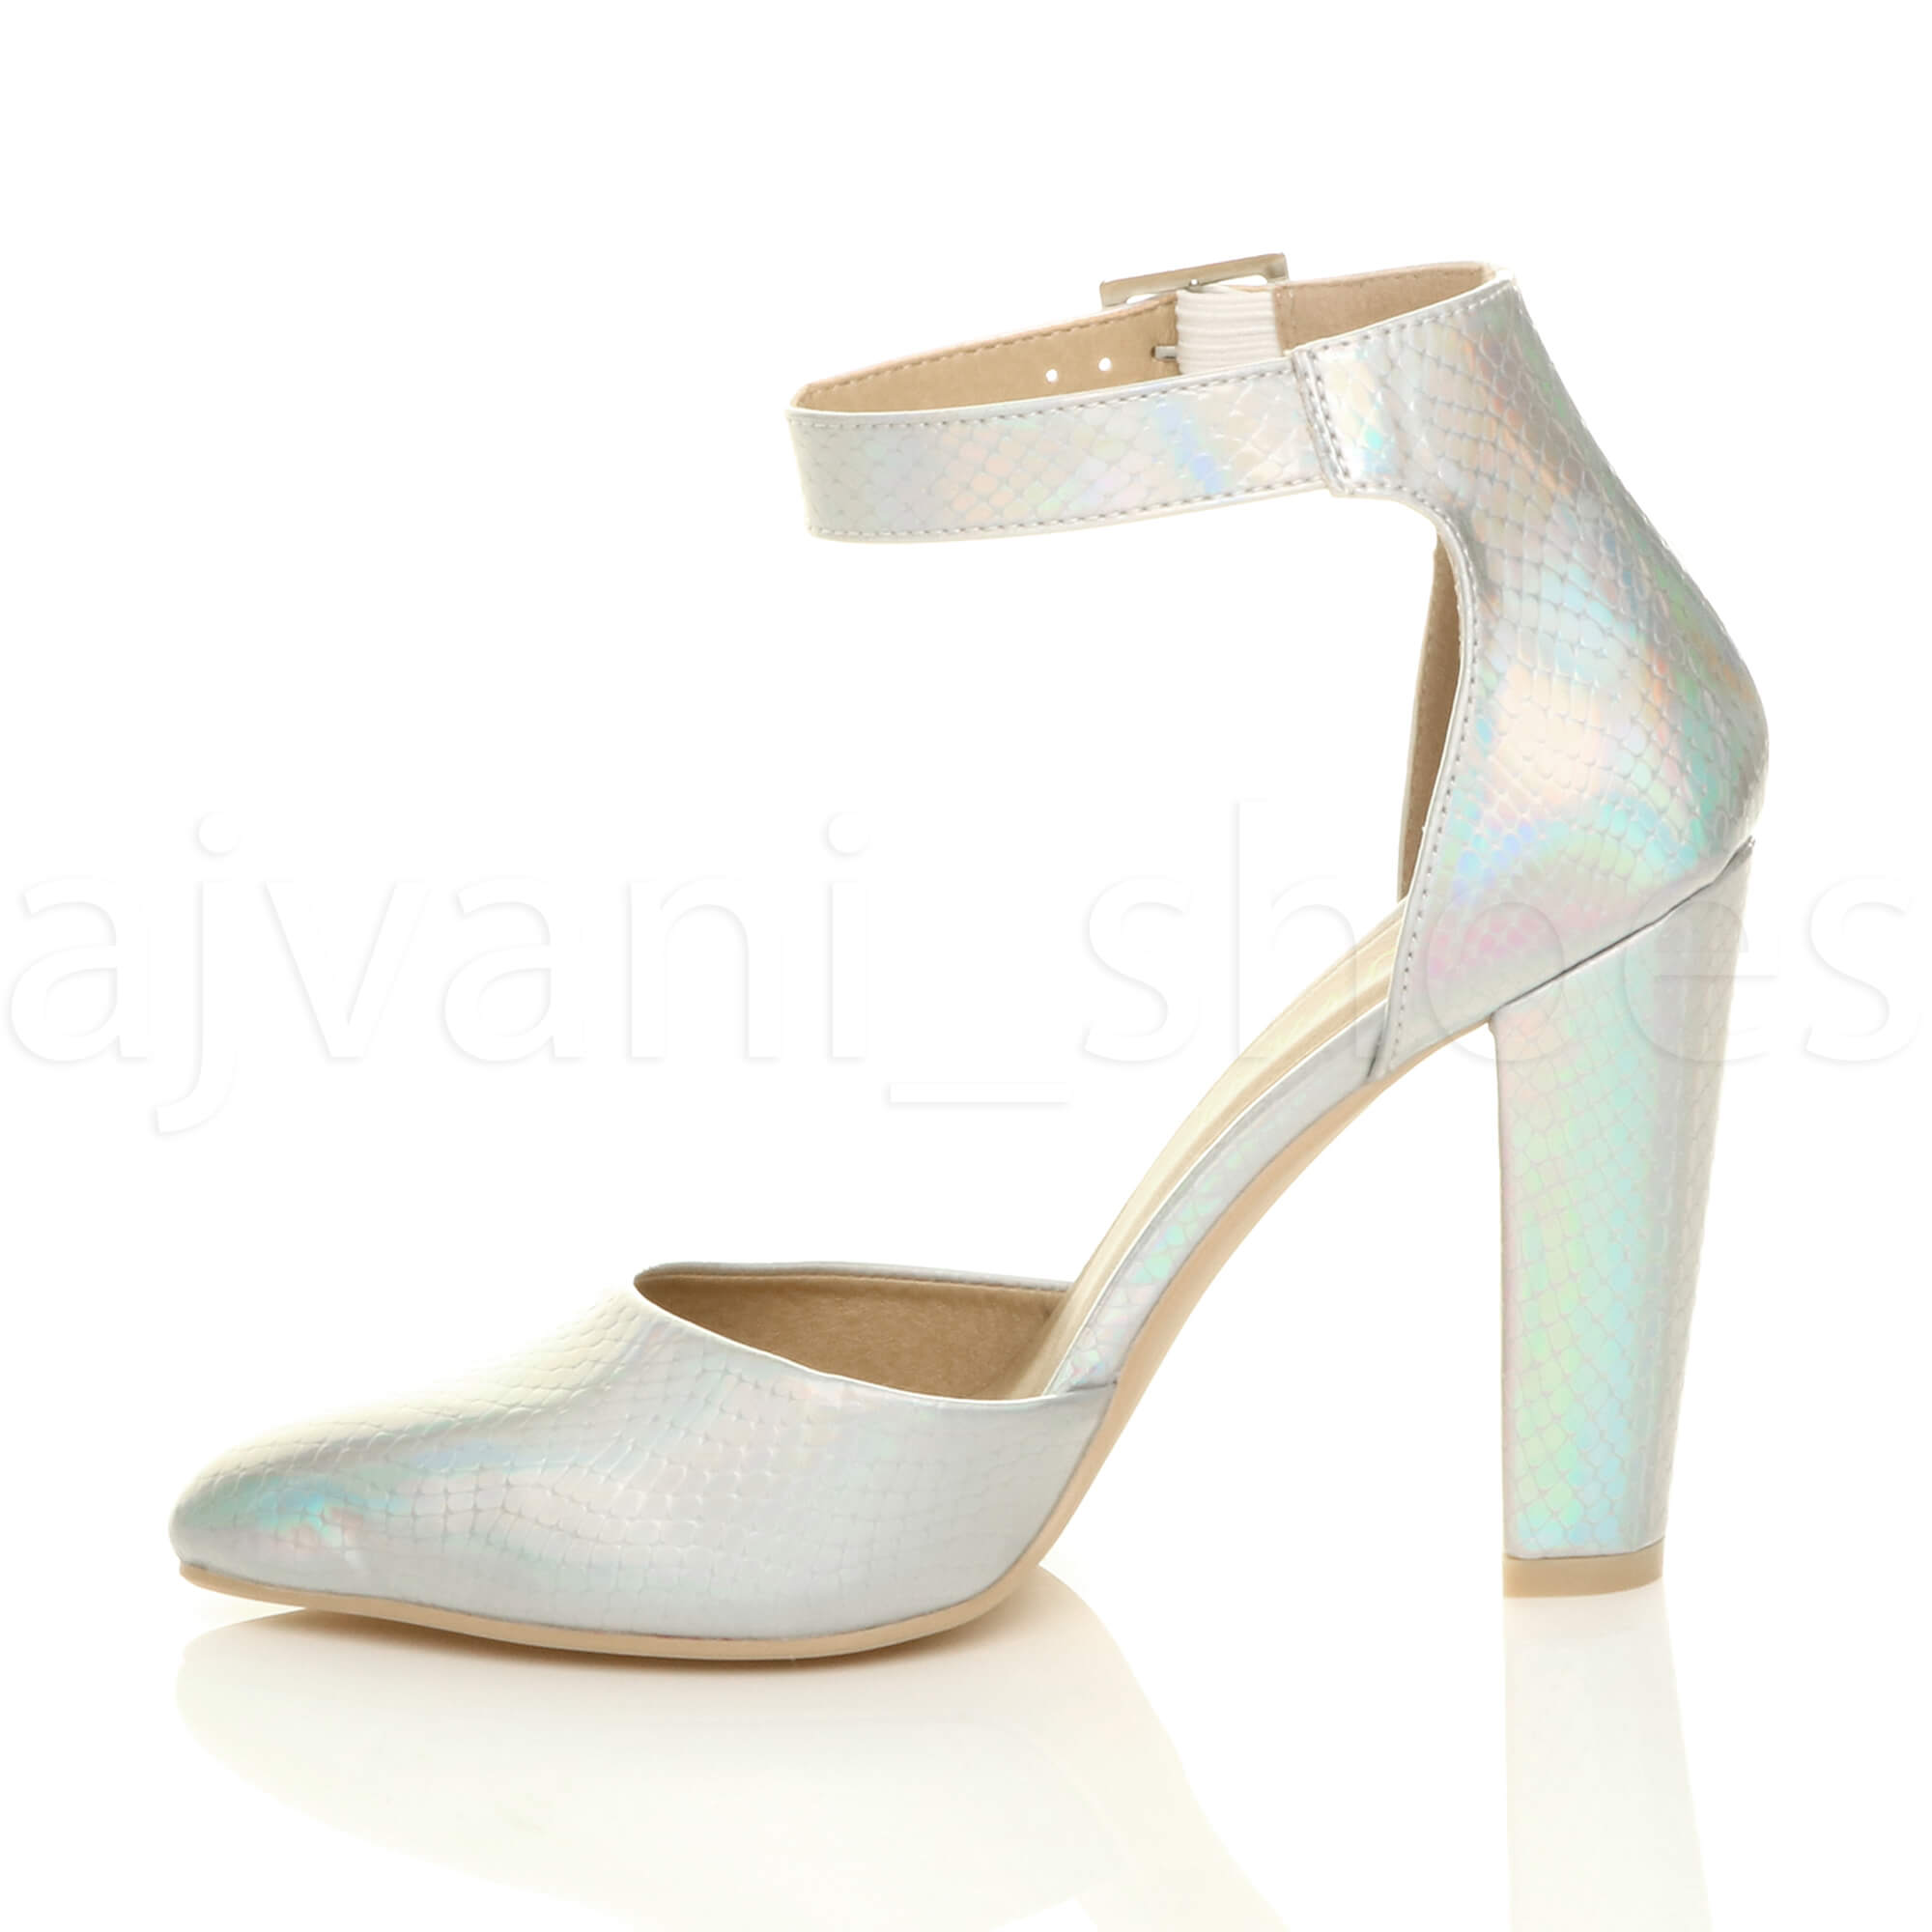 WOMENS-LADIES-HIGH-BLOCK-HEEL-ANKLE-STRAP-BUCKLE-POINTED-COURT-SHOES-SIZE thumbnail 165